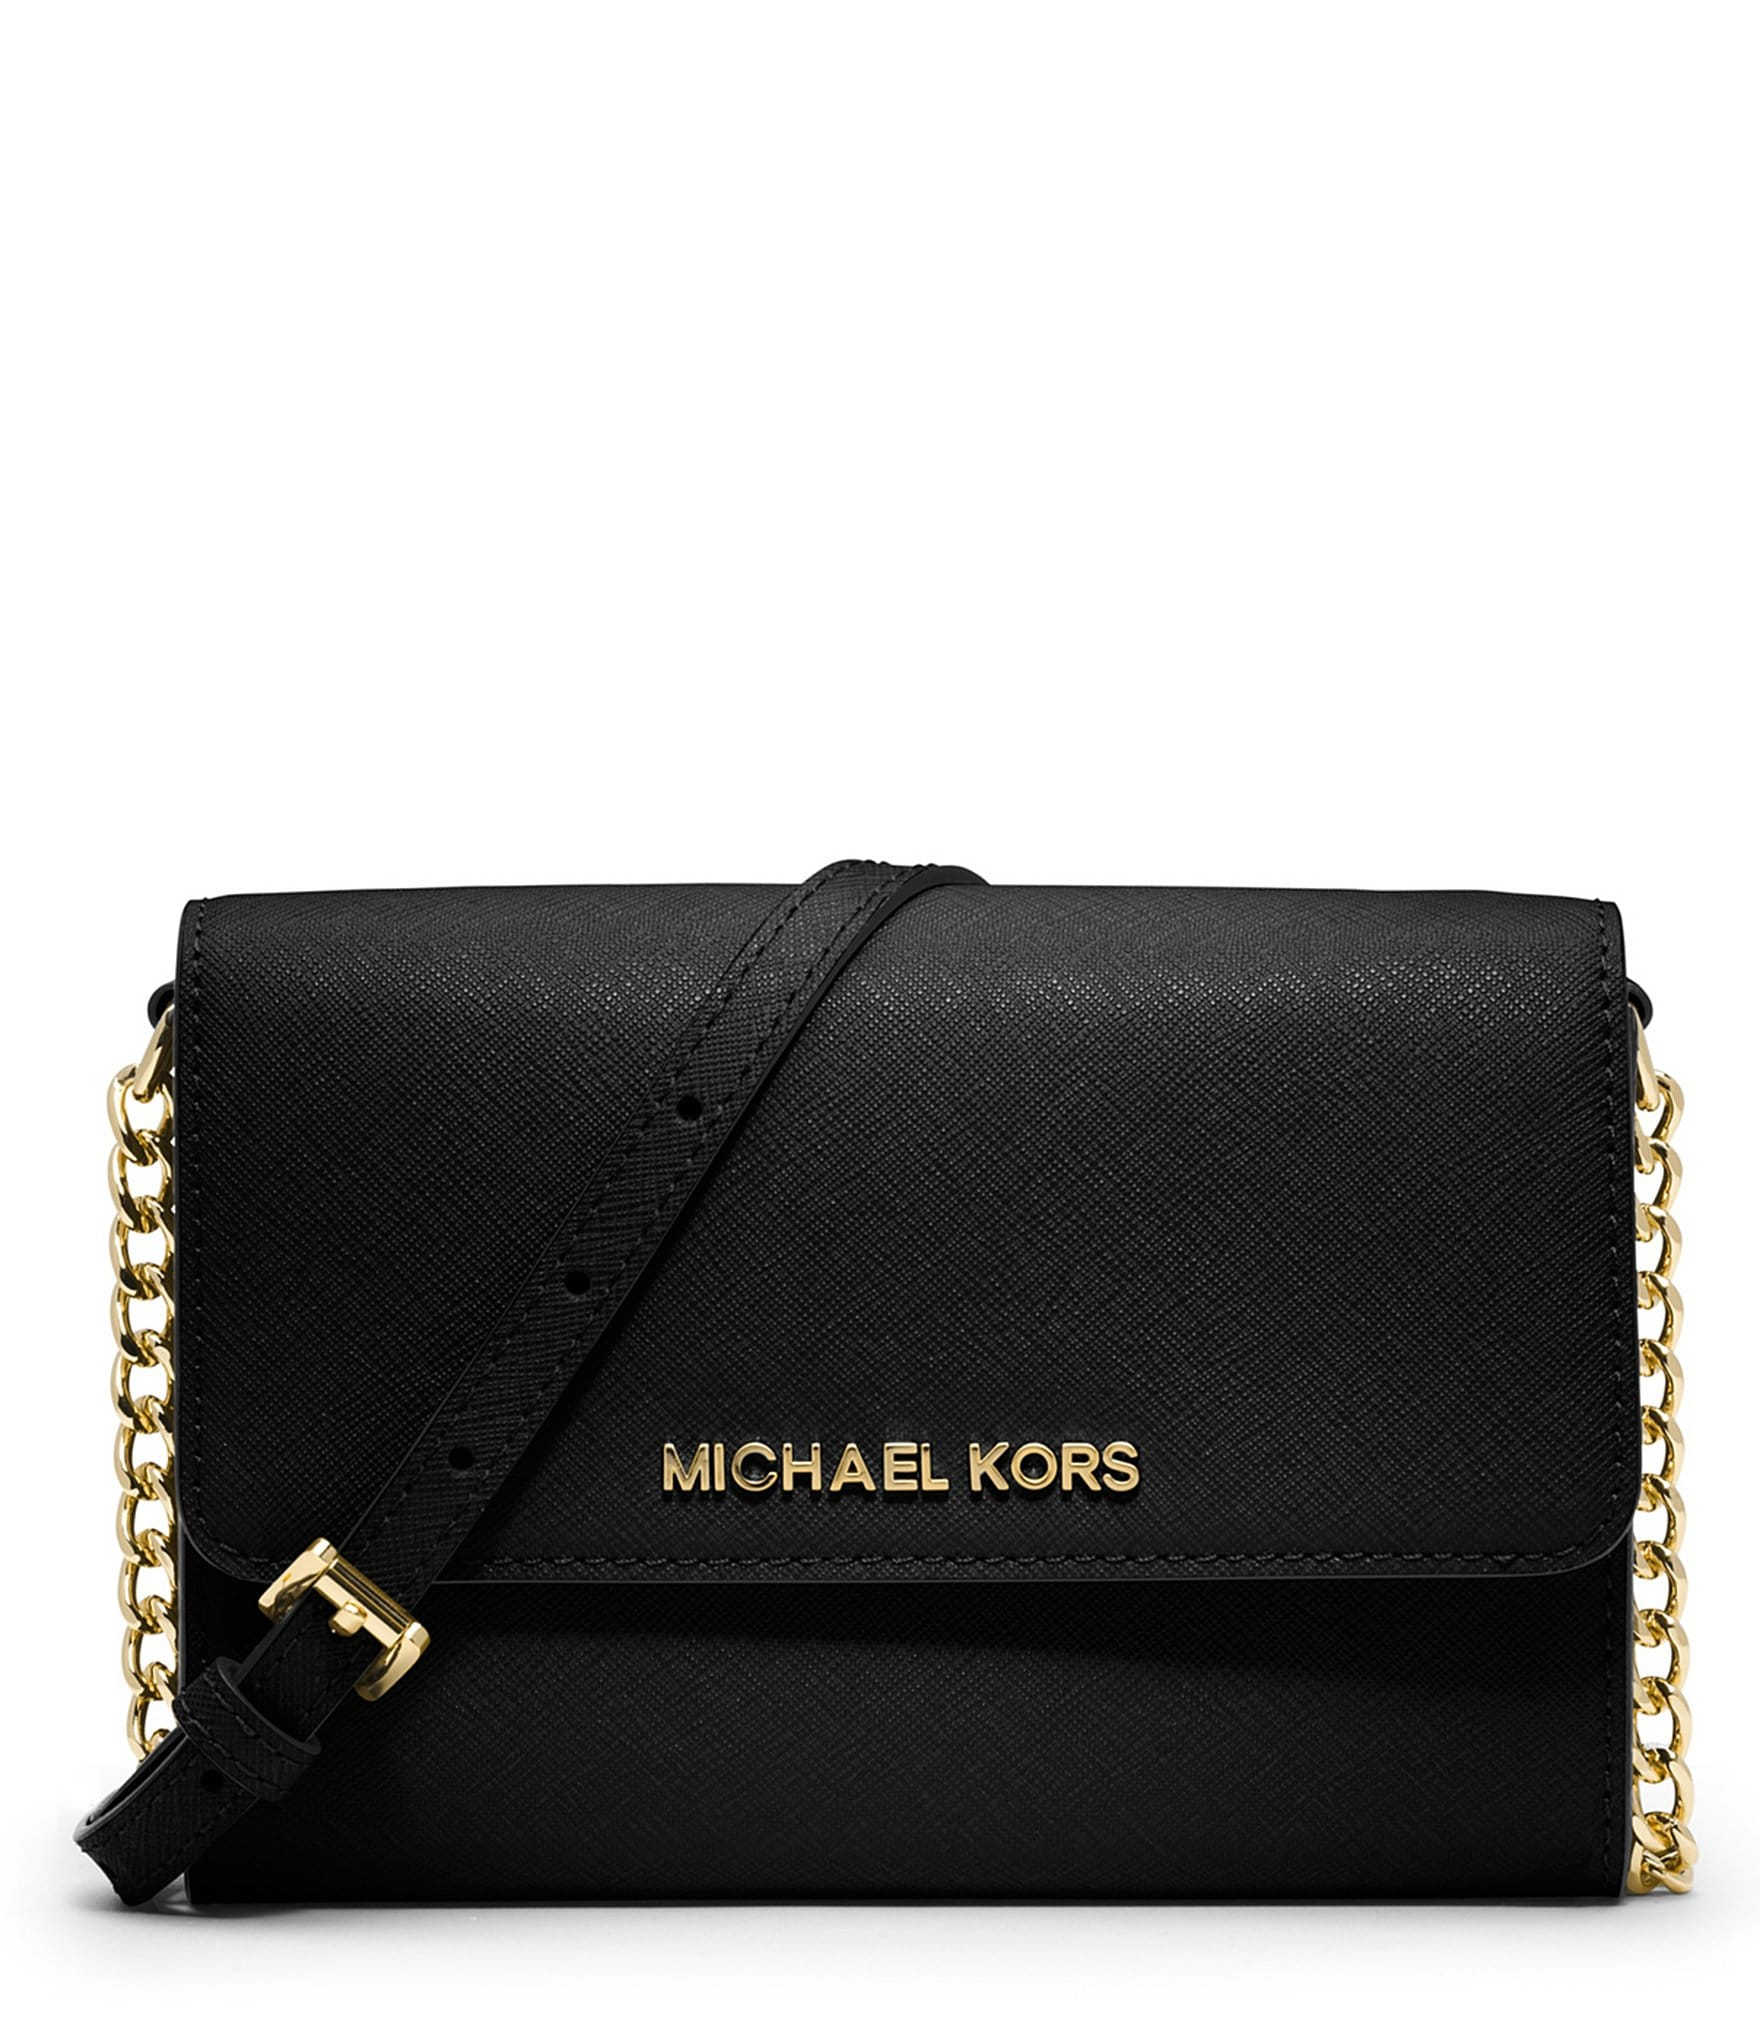 michael michael kors jet set travel large phone cross body bag dillards. Black Bedroom Furniture Sets. Home Design Ideas